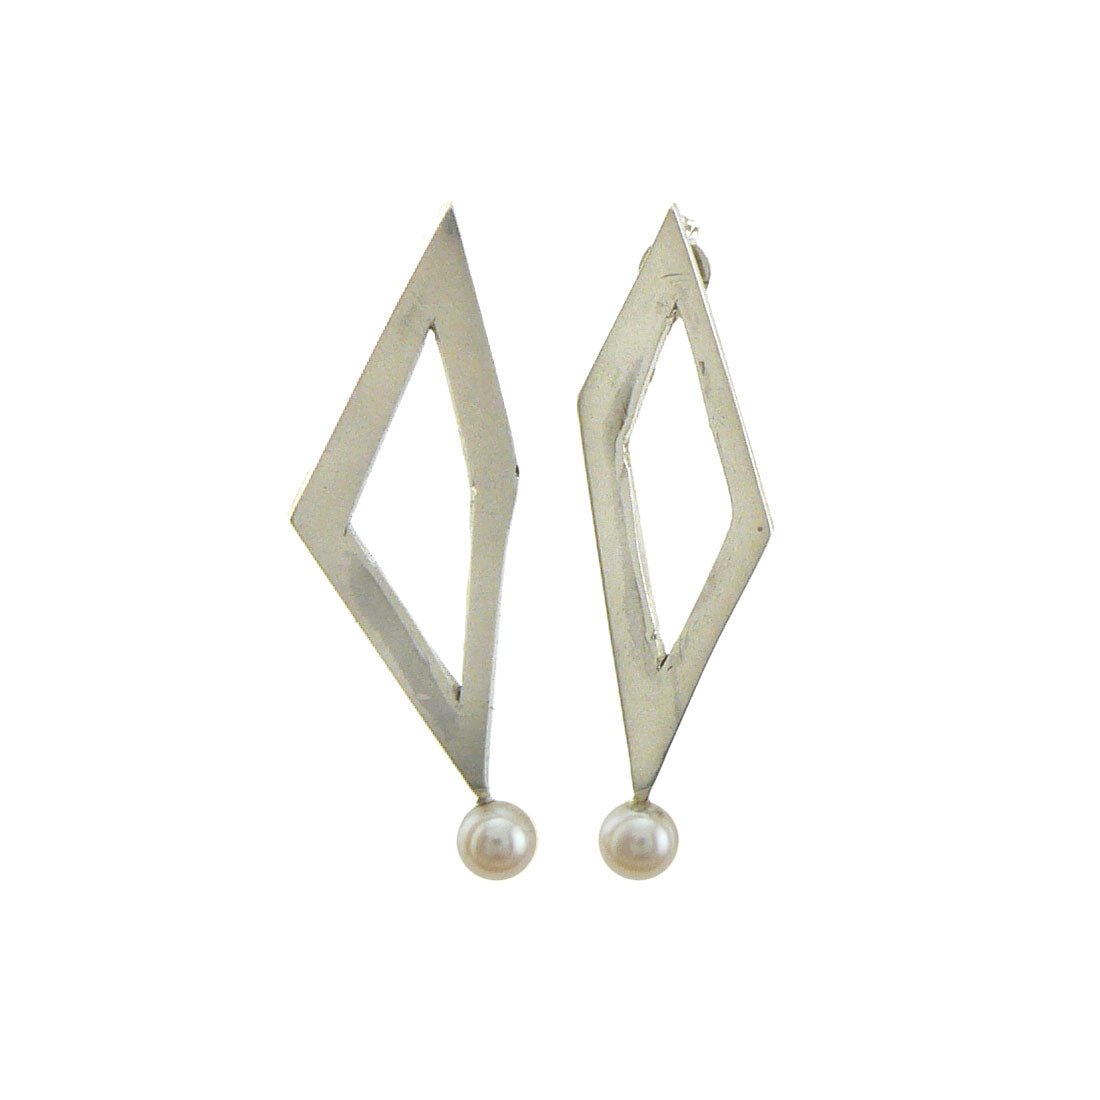 silver diamond shaped earring with pearls attached, Custom bespoke handmade jewellery.